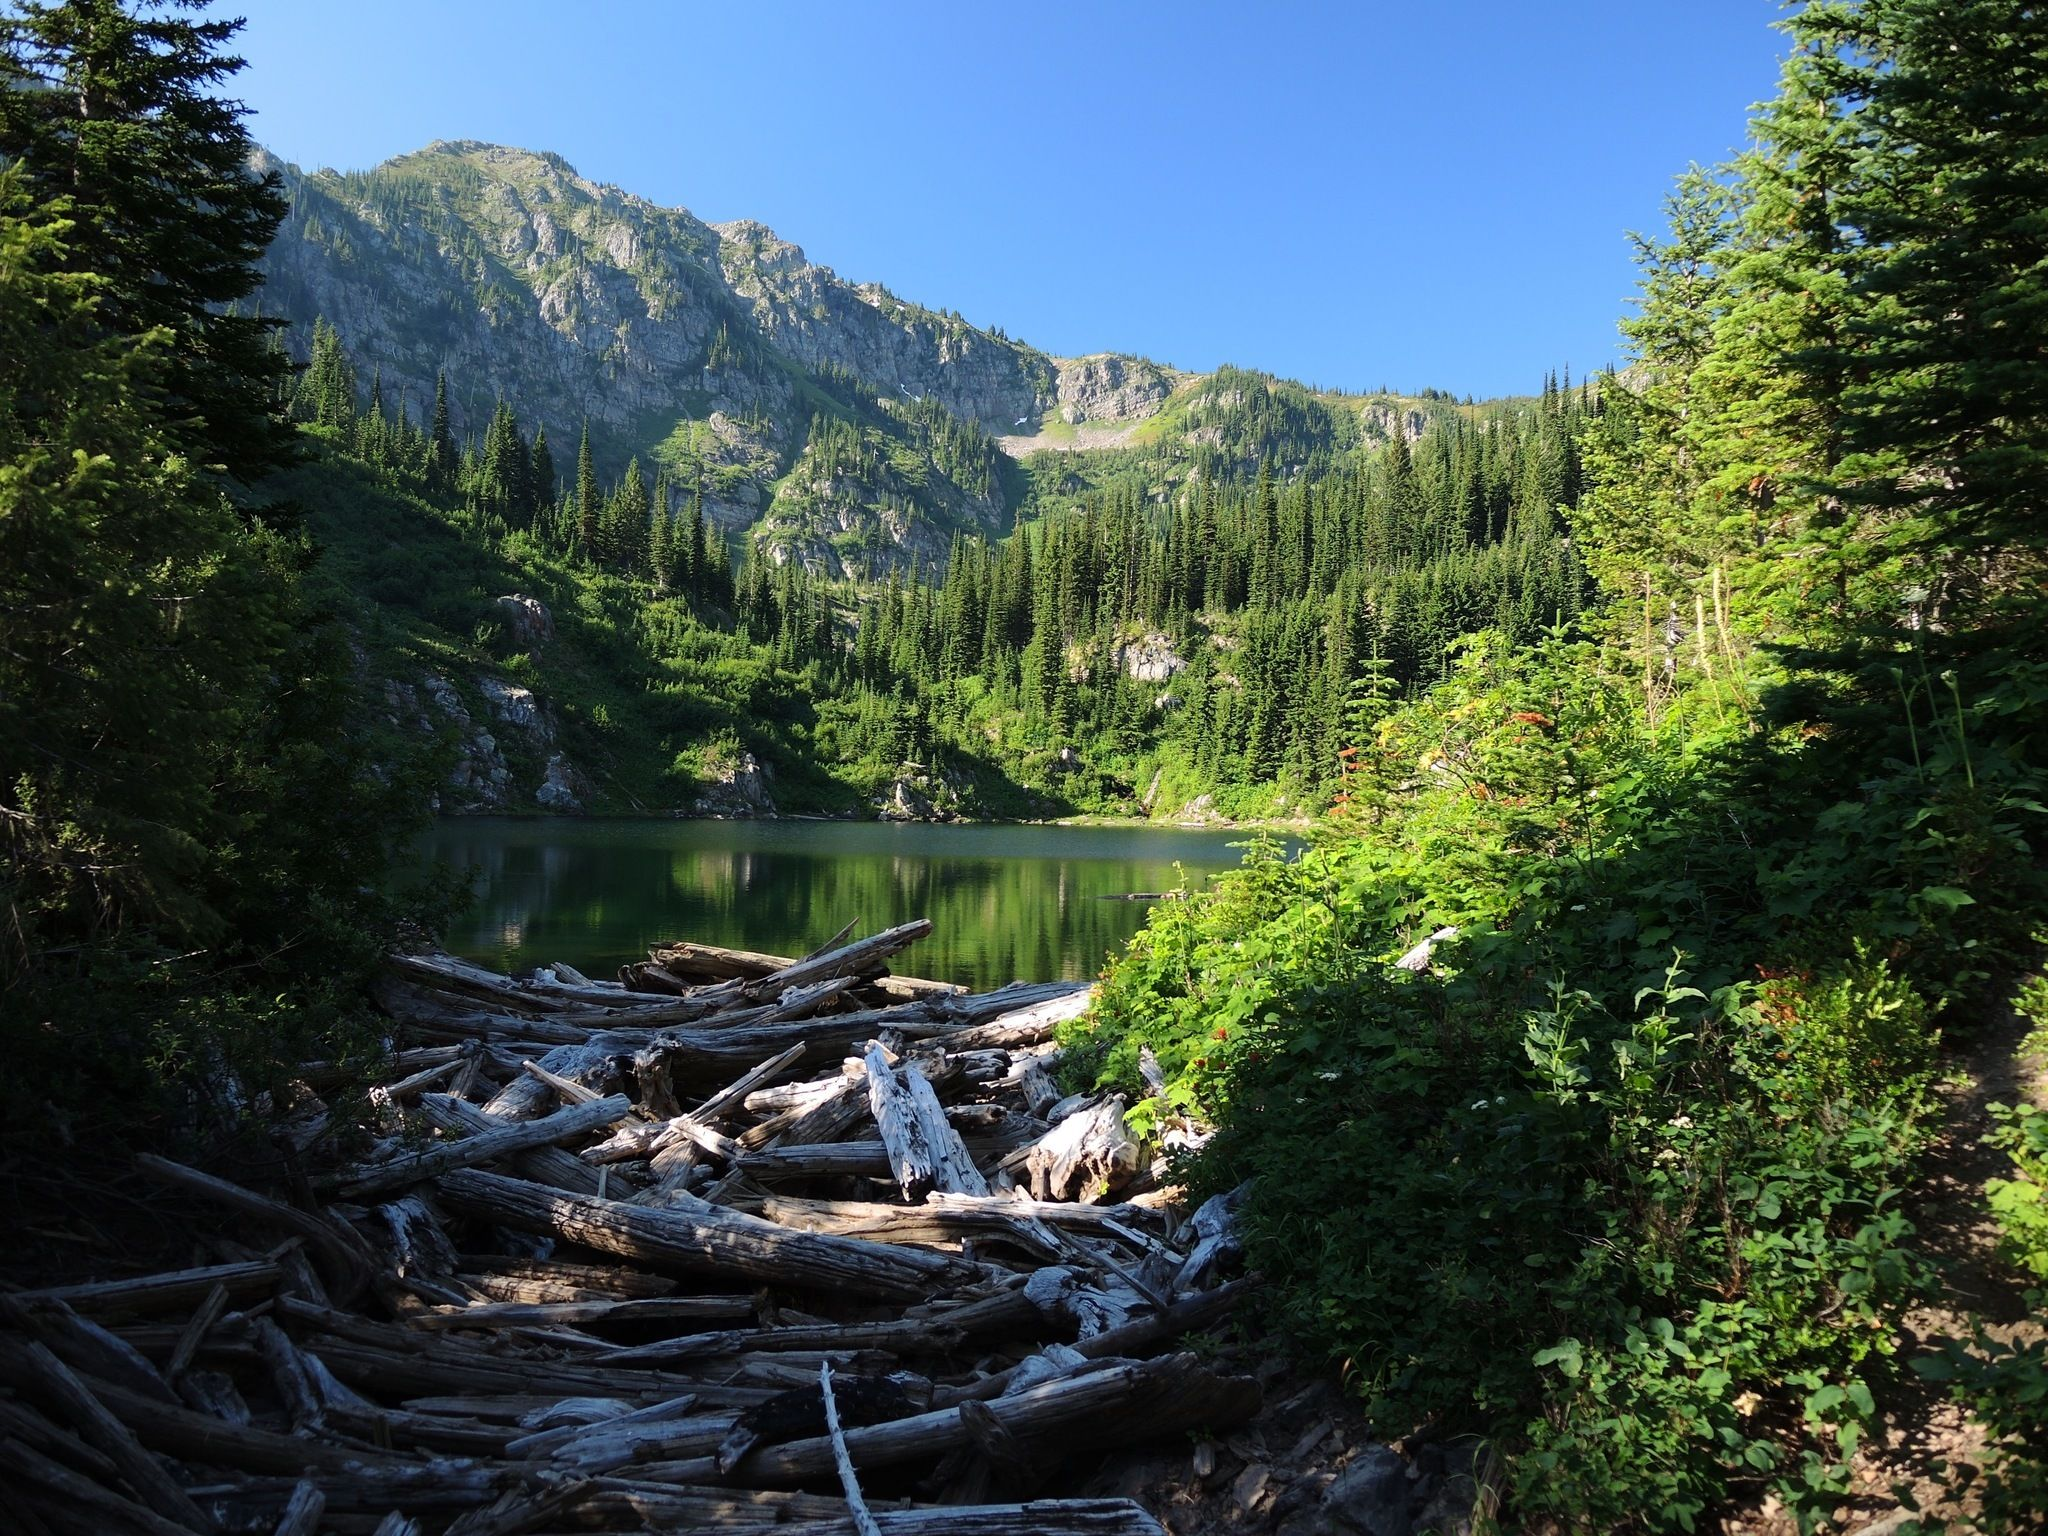 Escape The Entire World On The Secluded Lone Lake Trail In Idaho